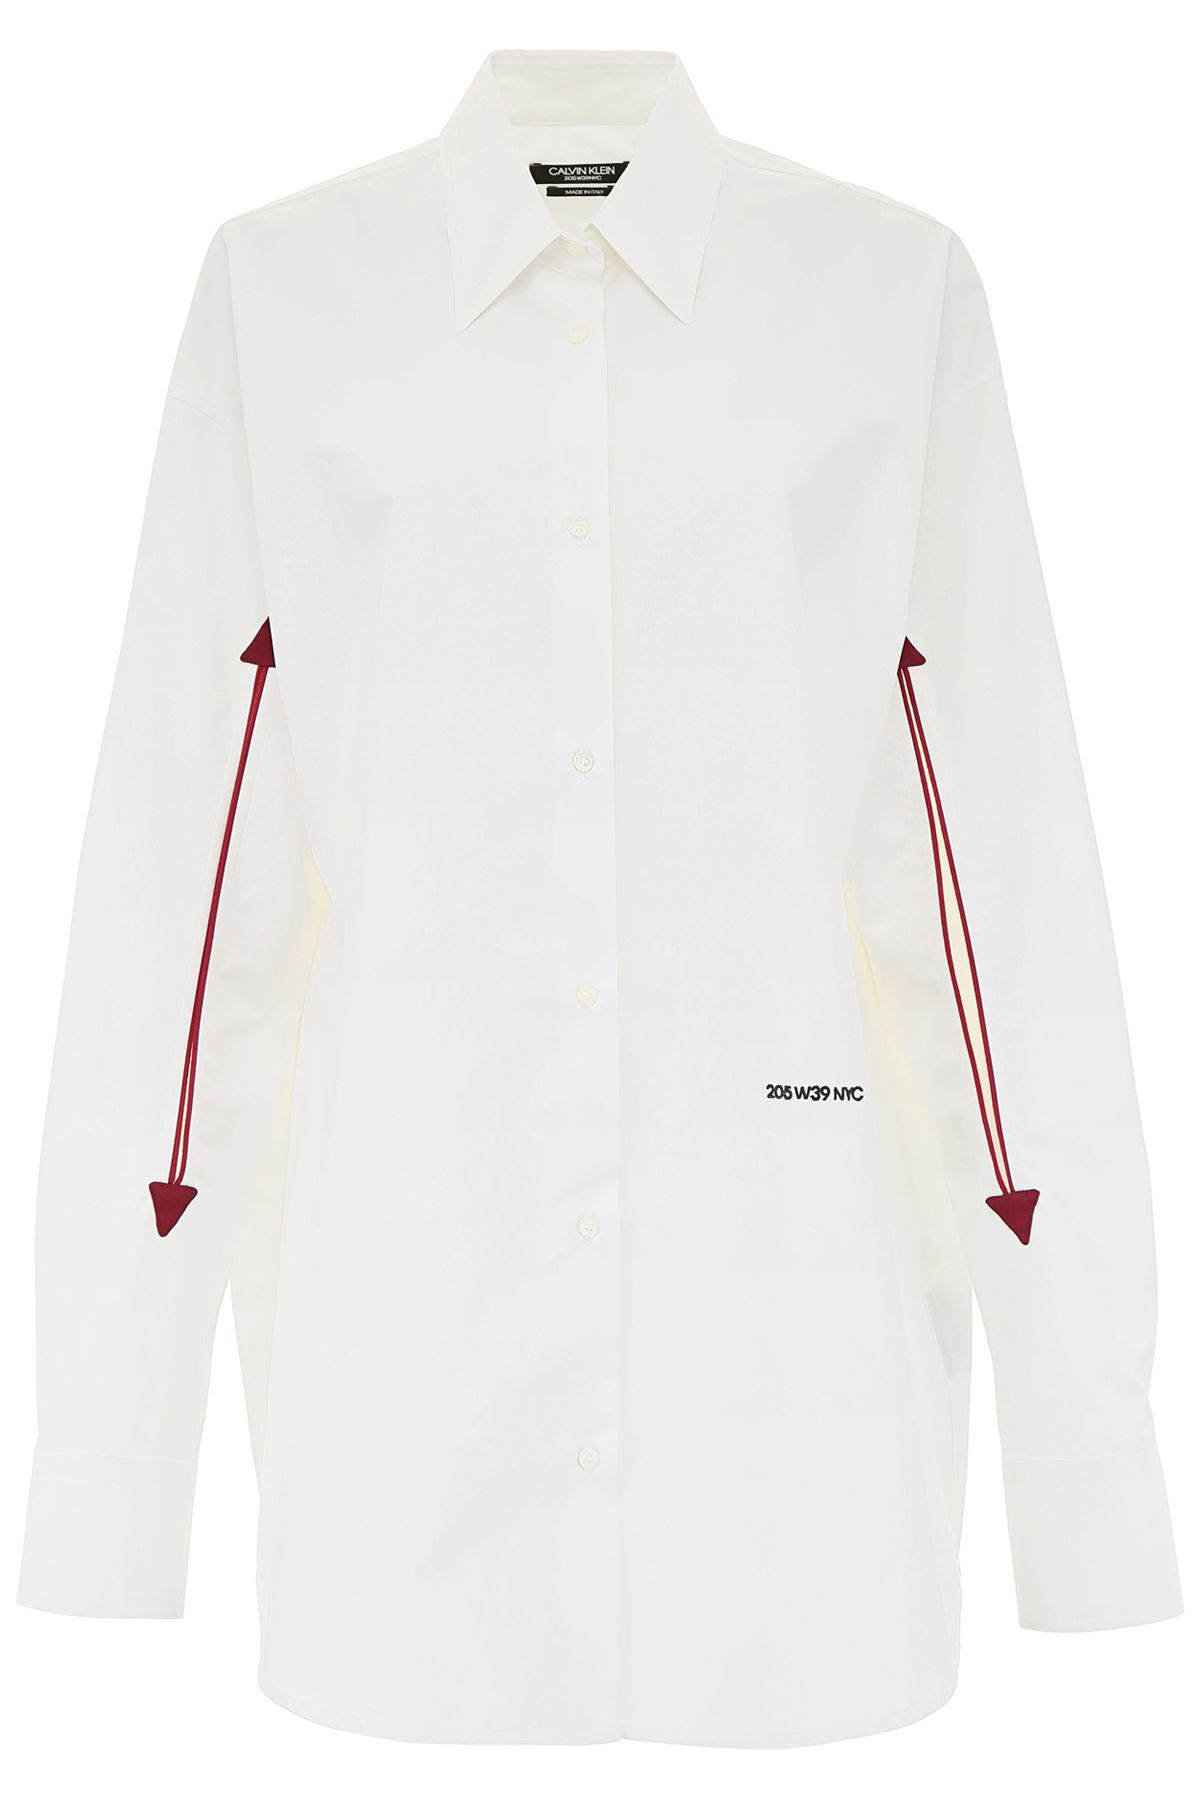 CALVIN KLEIN OVERSIZED SHIRT WITH HOLES